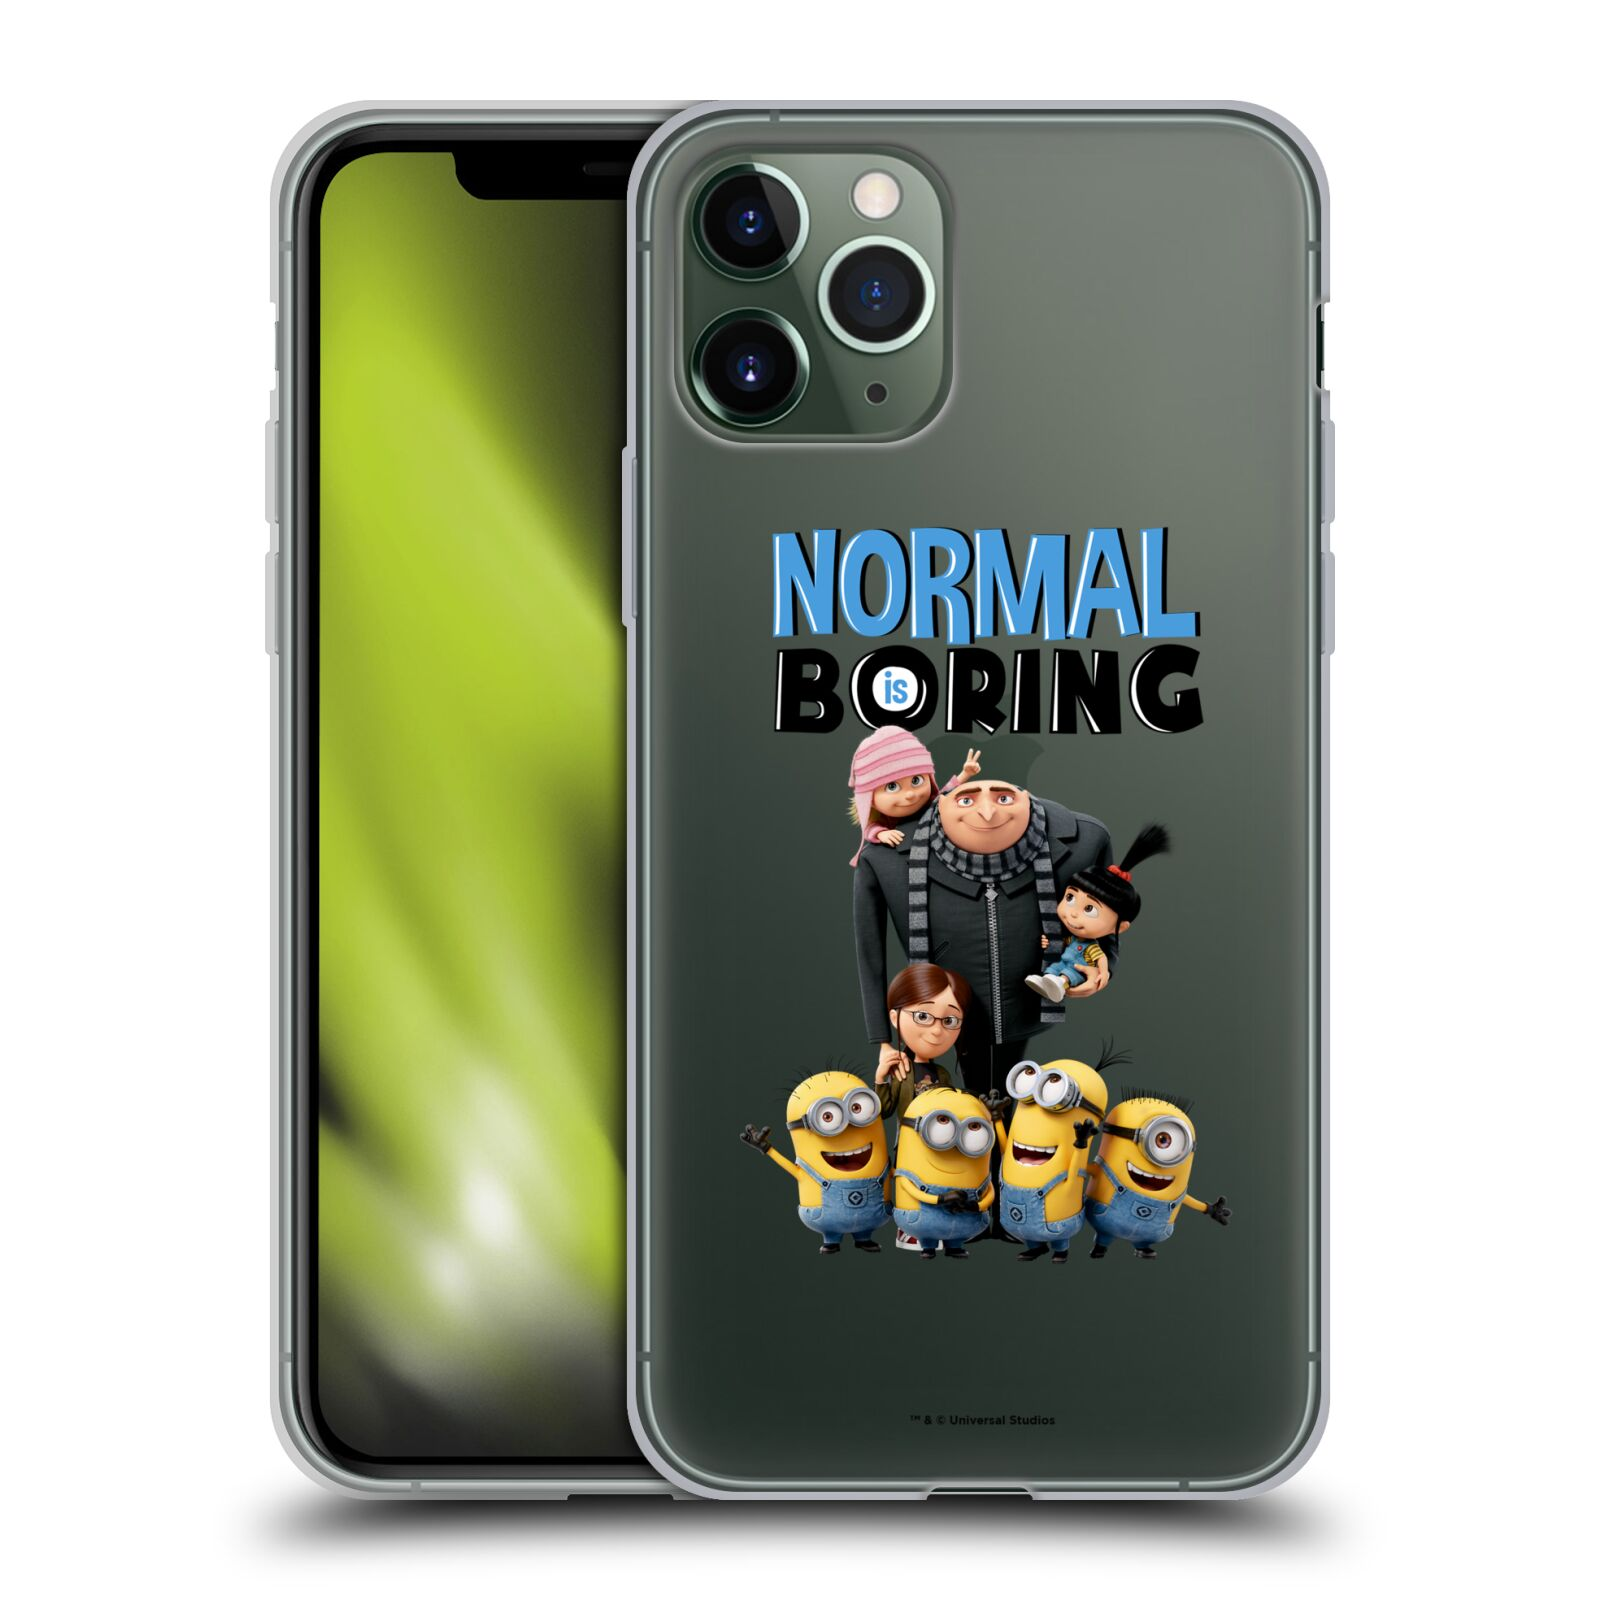 gucci phone case iphone x blind for love , Silikonové pouzdro na mobil Apple iPhone 11 Pro - Head Case - Normal is boring z filmu Já, padouch - Despicable Me